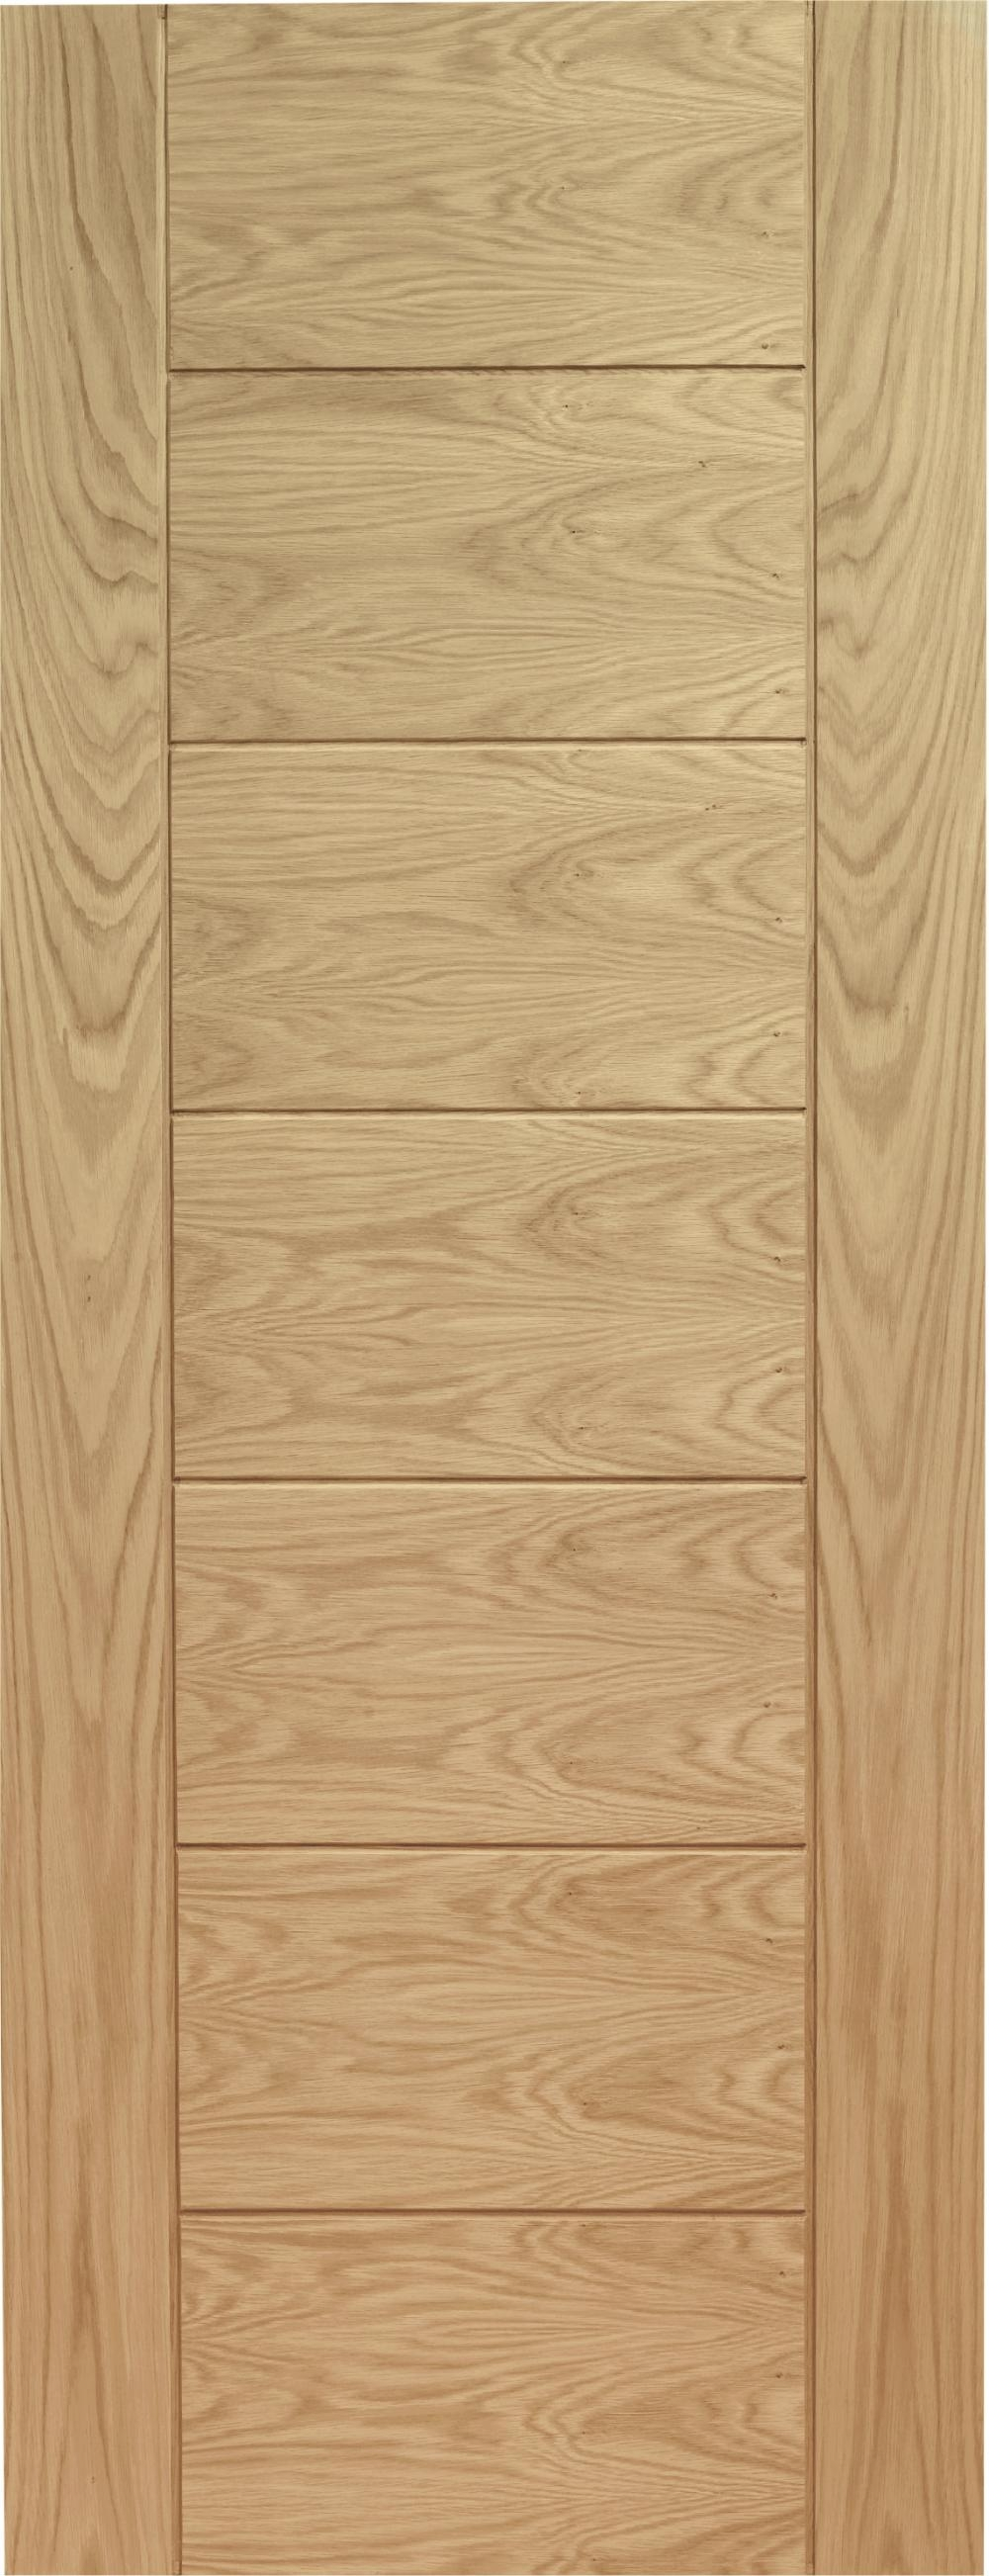 Palermo Oak - PREFINISHED:  Image